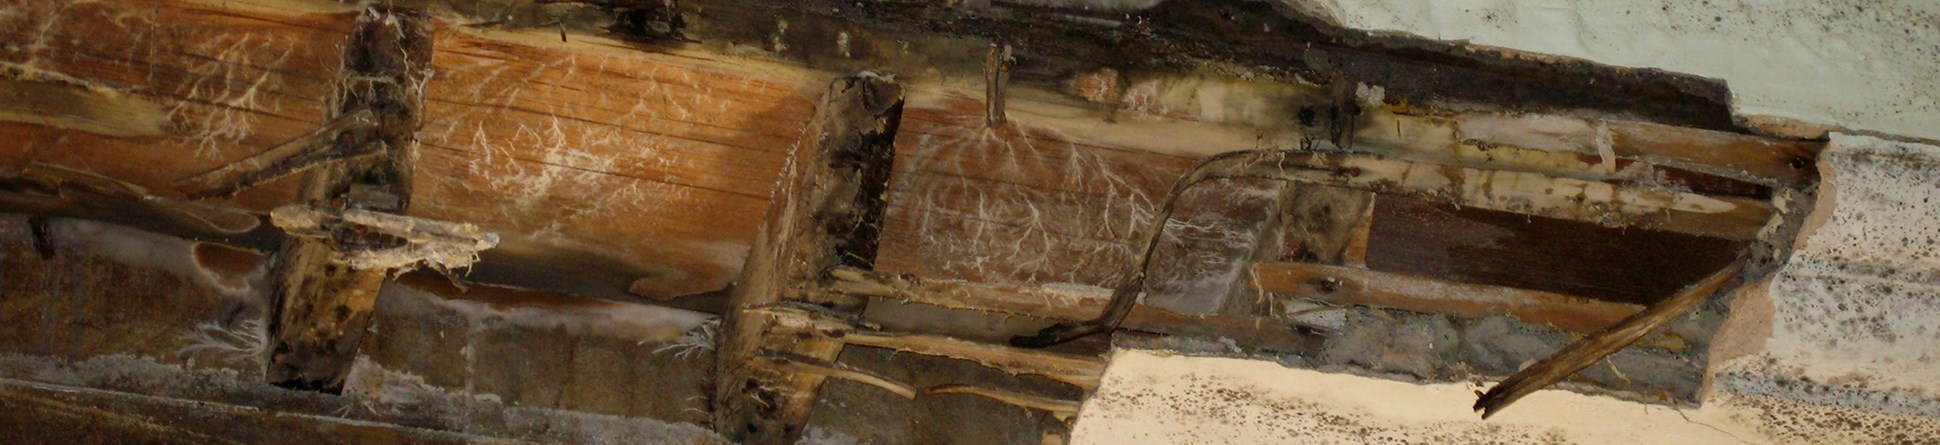 A white plaster cornice has partly collapsed, exposing the timber. Part of a wood-framed stained glass window can be seen in the foreground